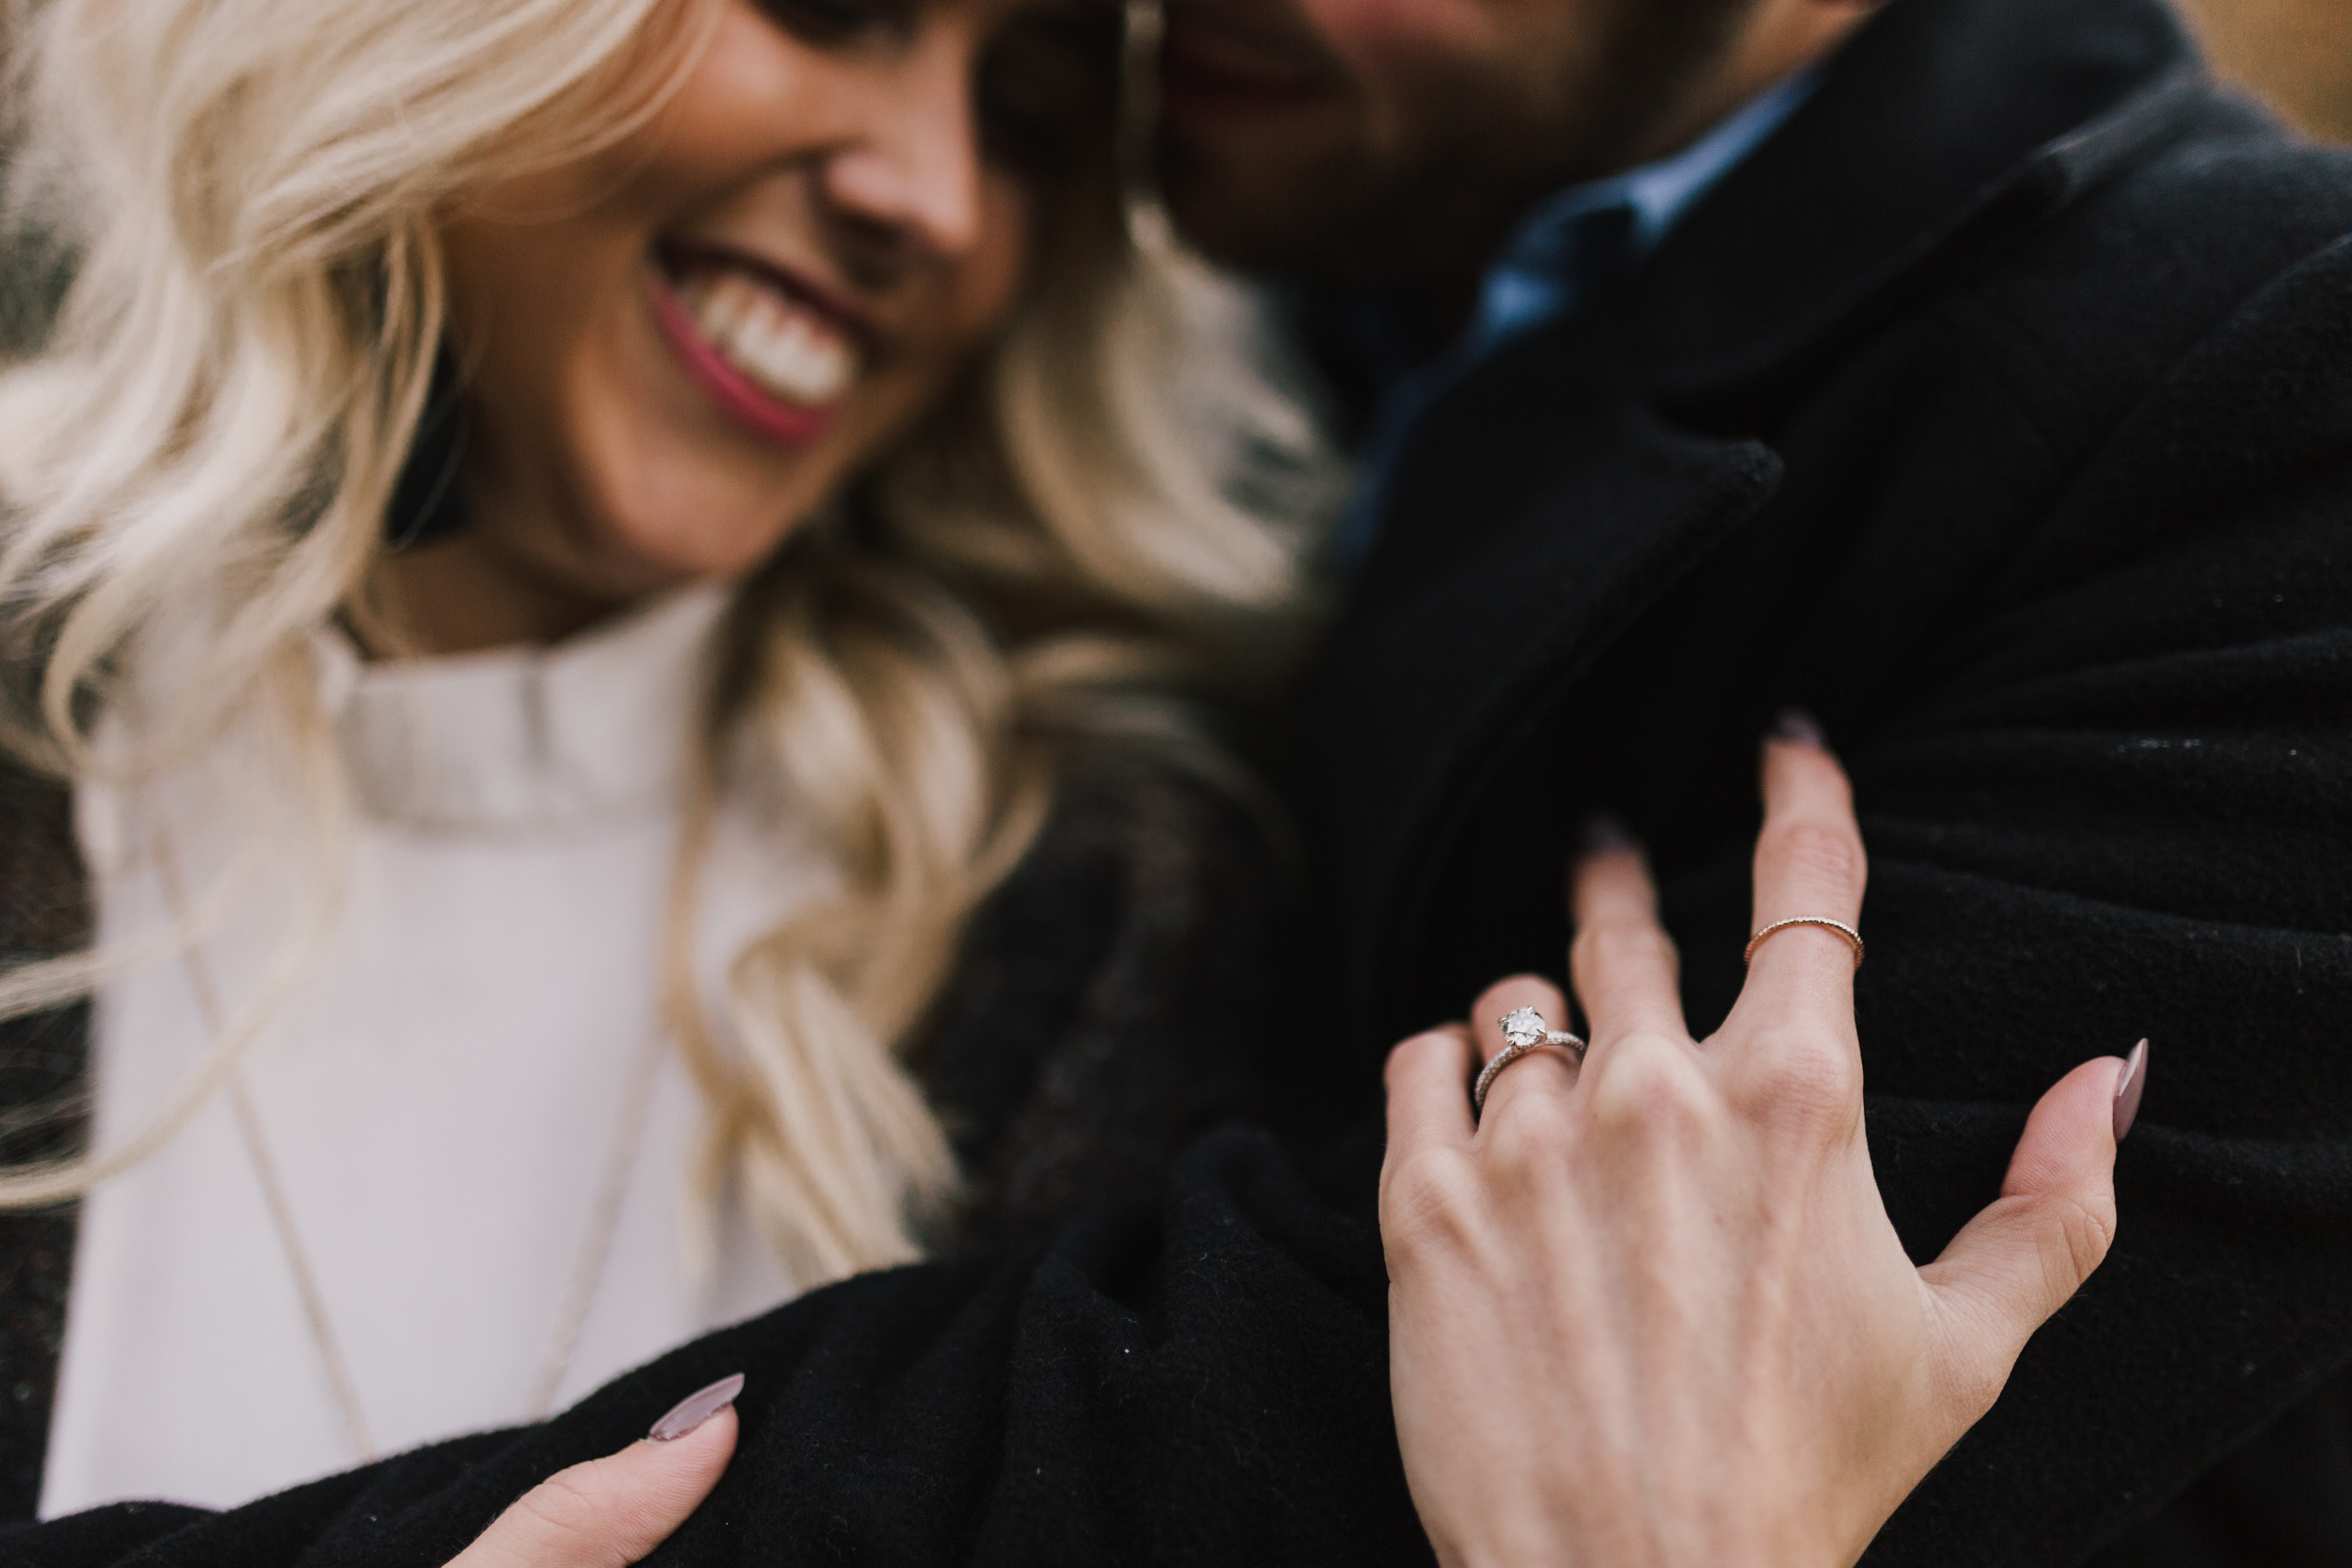 alyssa barletter photography proposal country club plaza park fall engagement how he asked she said yes-18.jpg